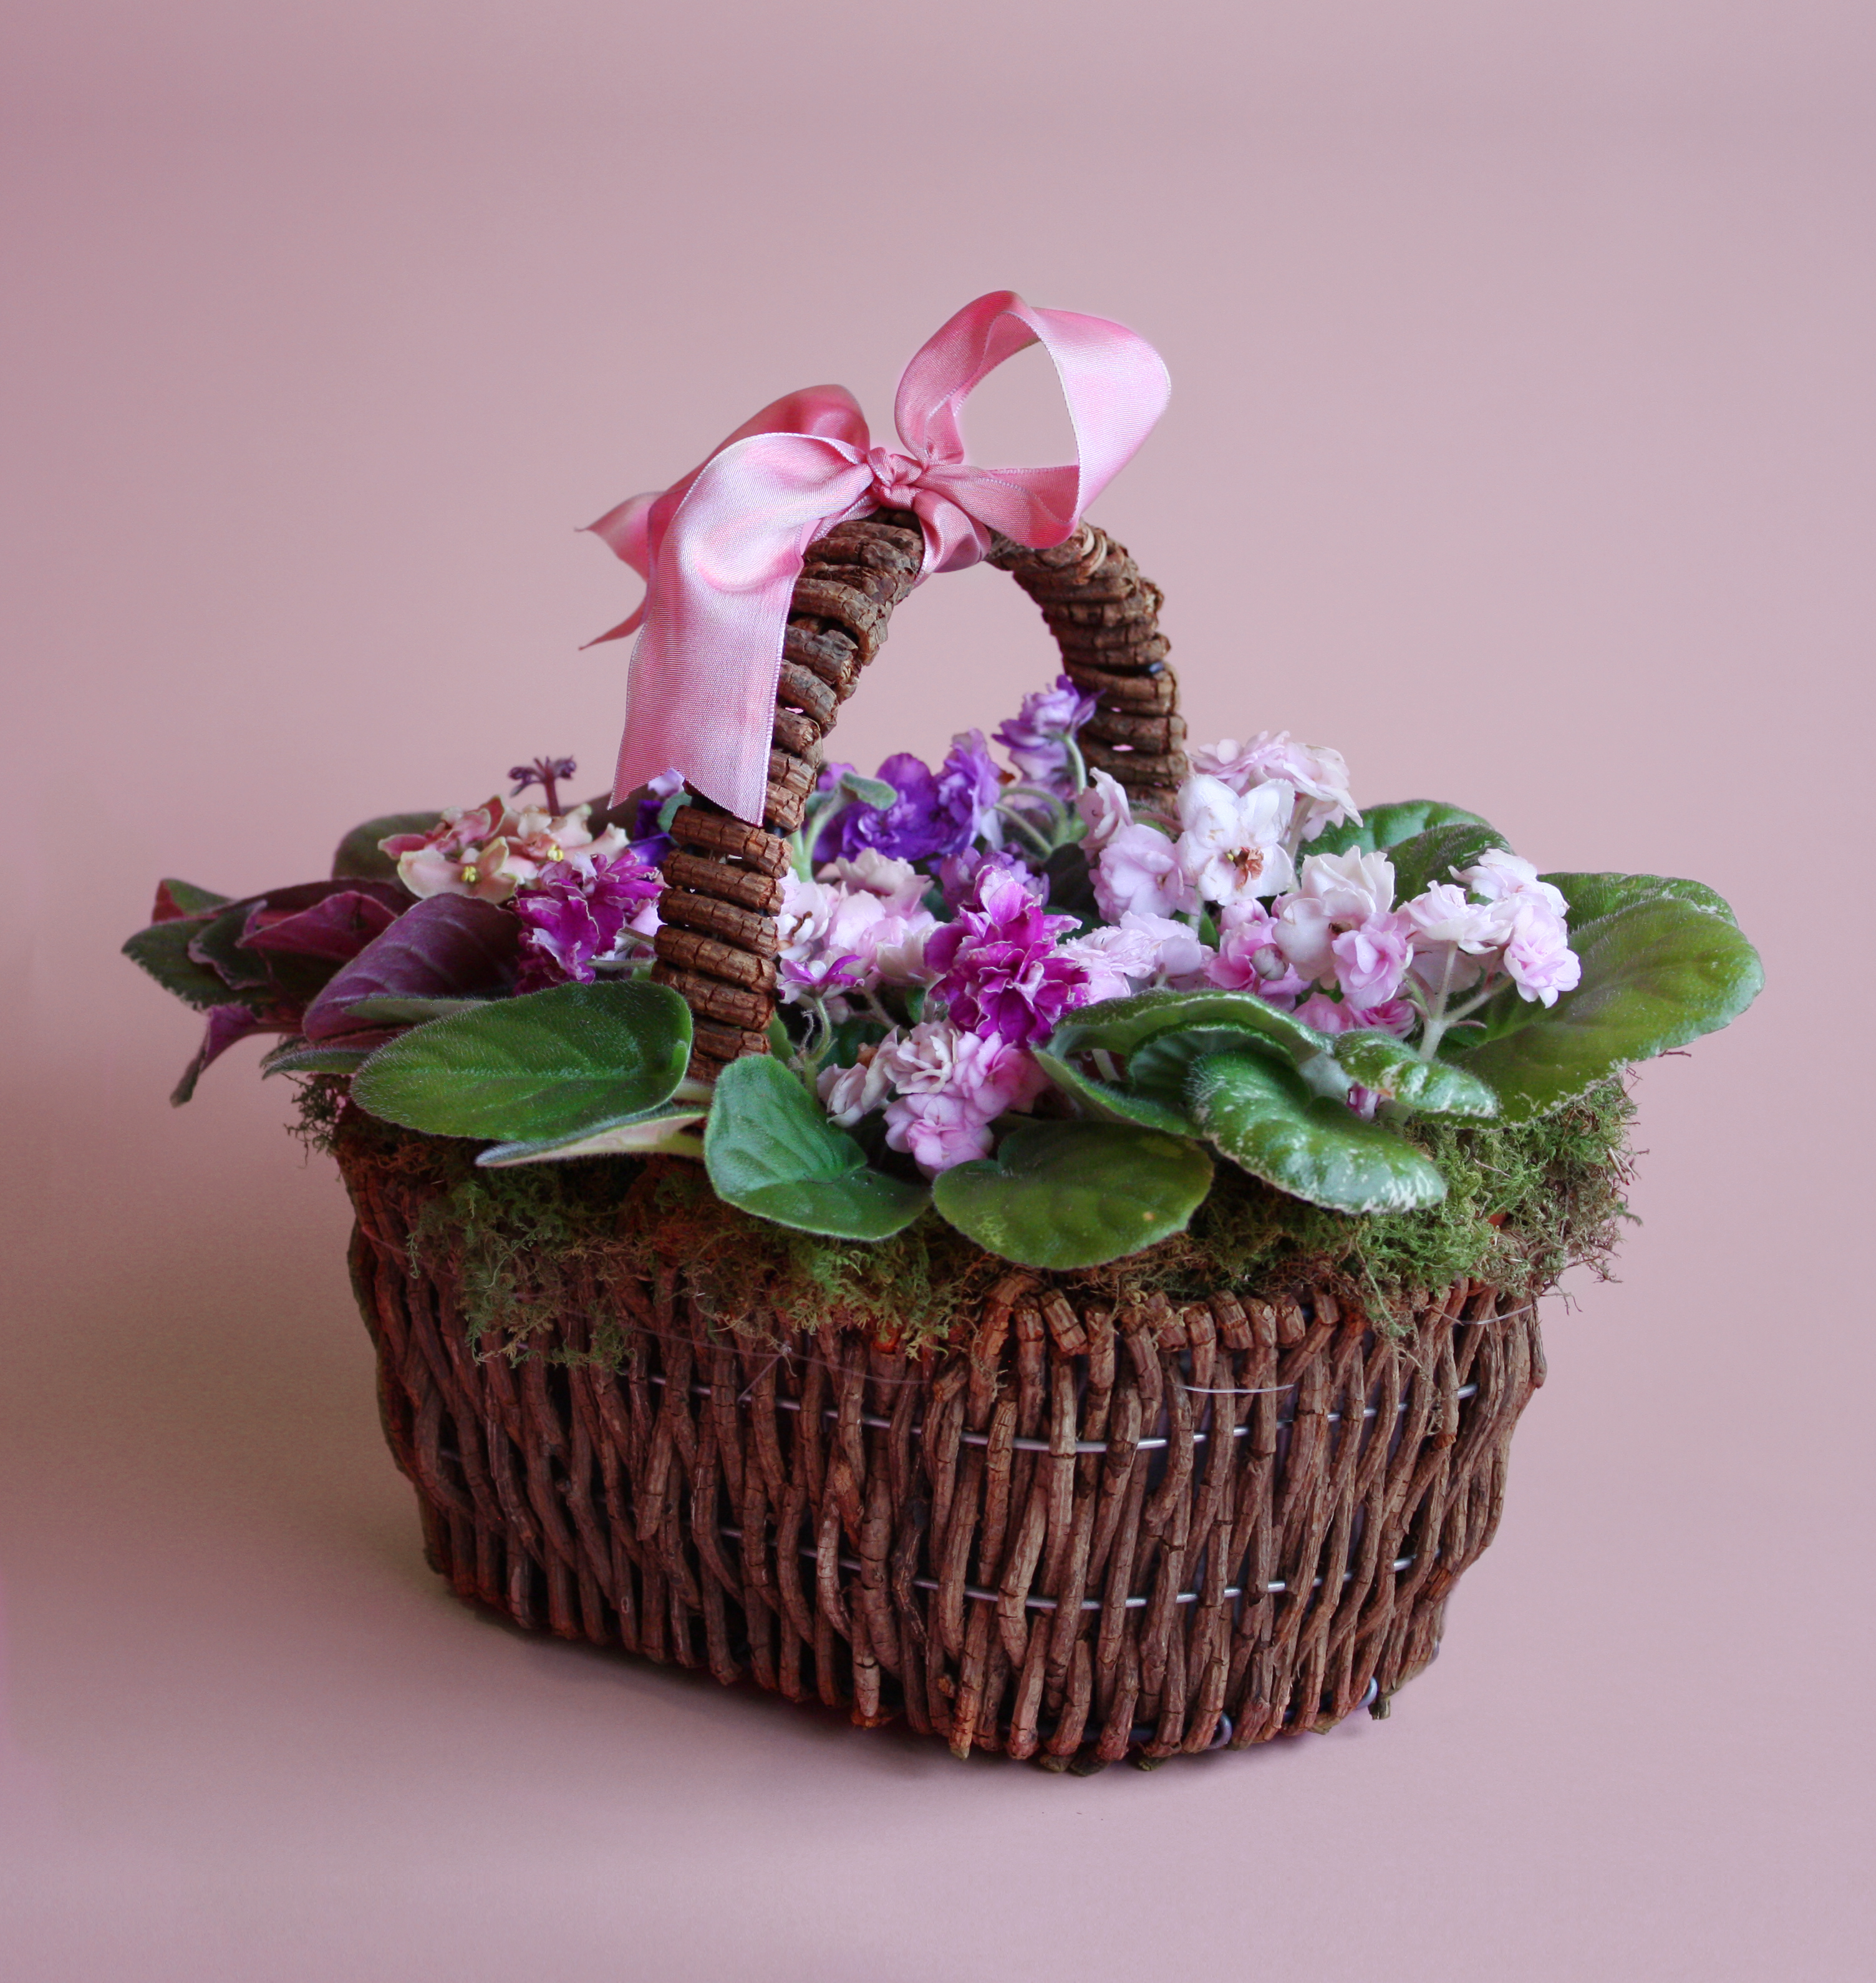 Sweet Violet from Valley Forge Flowers in Wayne, PA